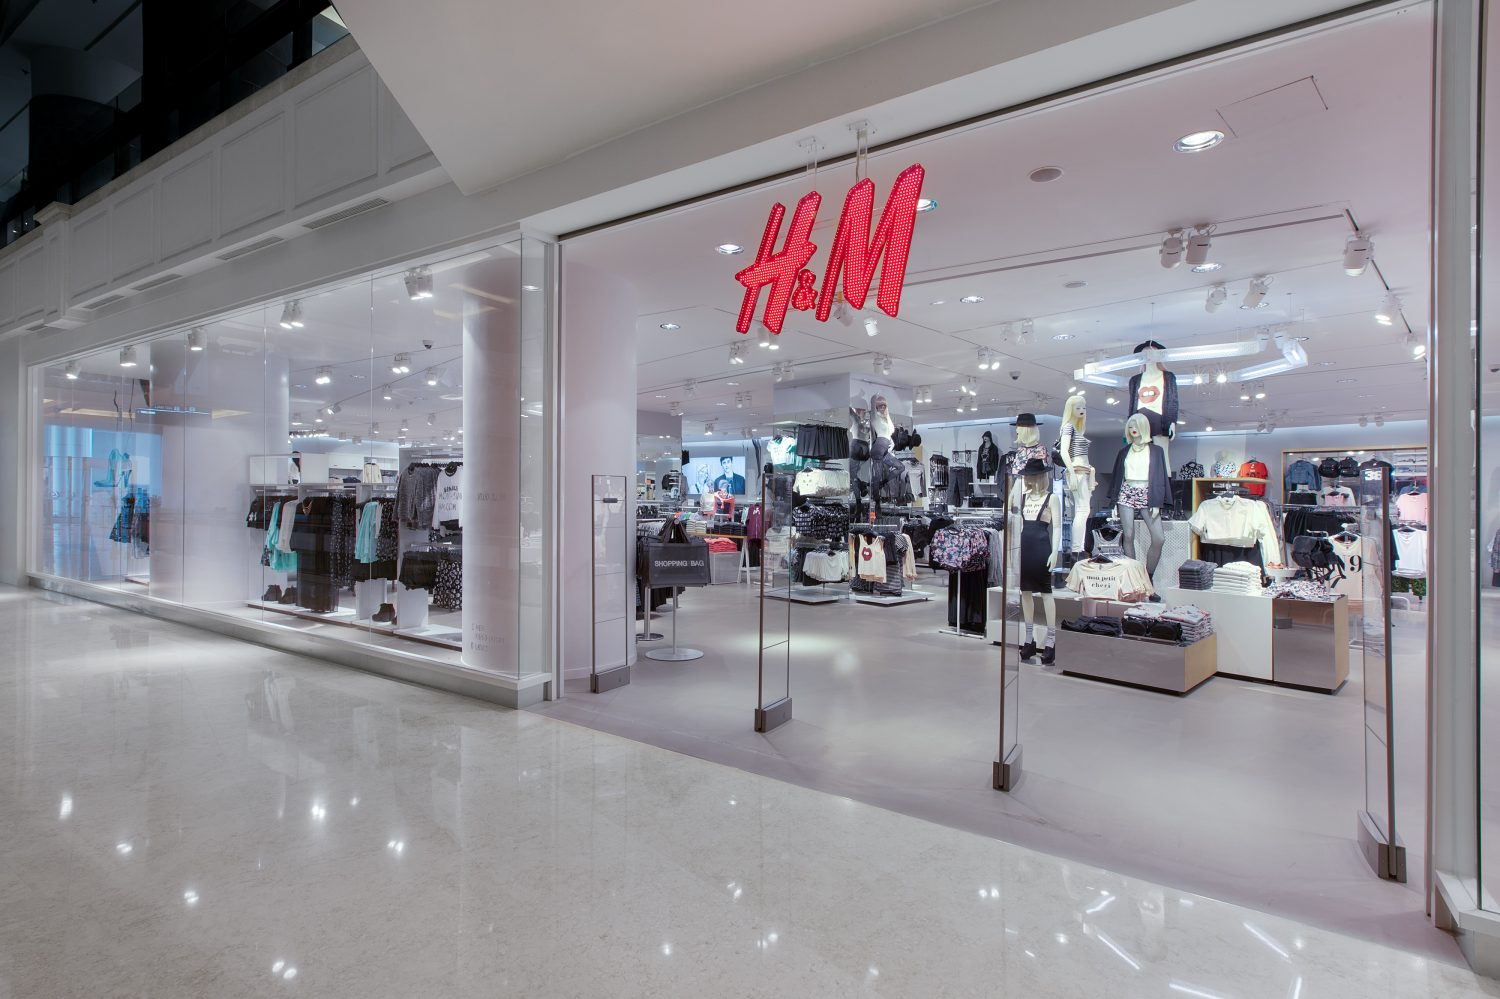 The collection was stocked in H&M stores worldwide and also sold through the H&M website On 12 June , H&M confirmed that it would launch a collaboration with avant-garde label Maison Martin Margiela for a fall rollout. The Maison Martin Margiela collection for H&M hit stores on 15 November